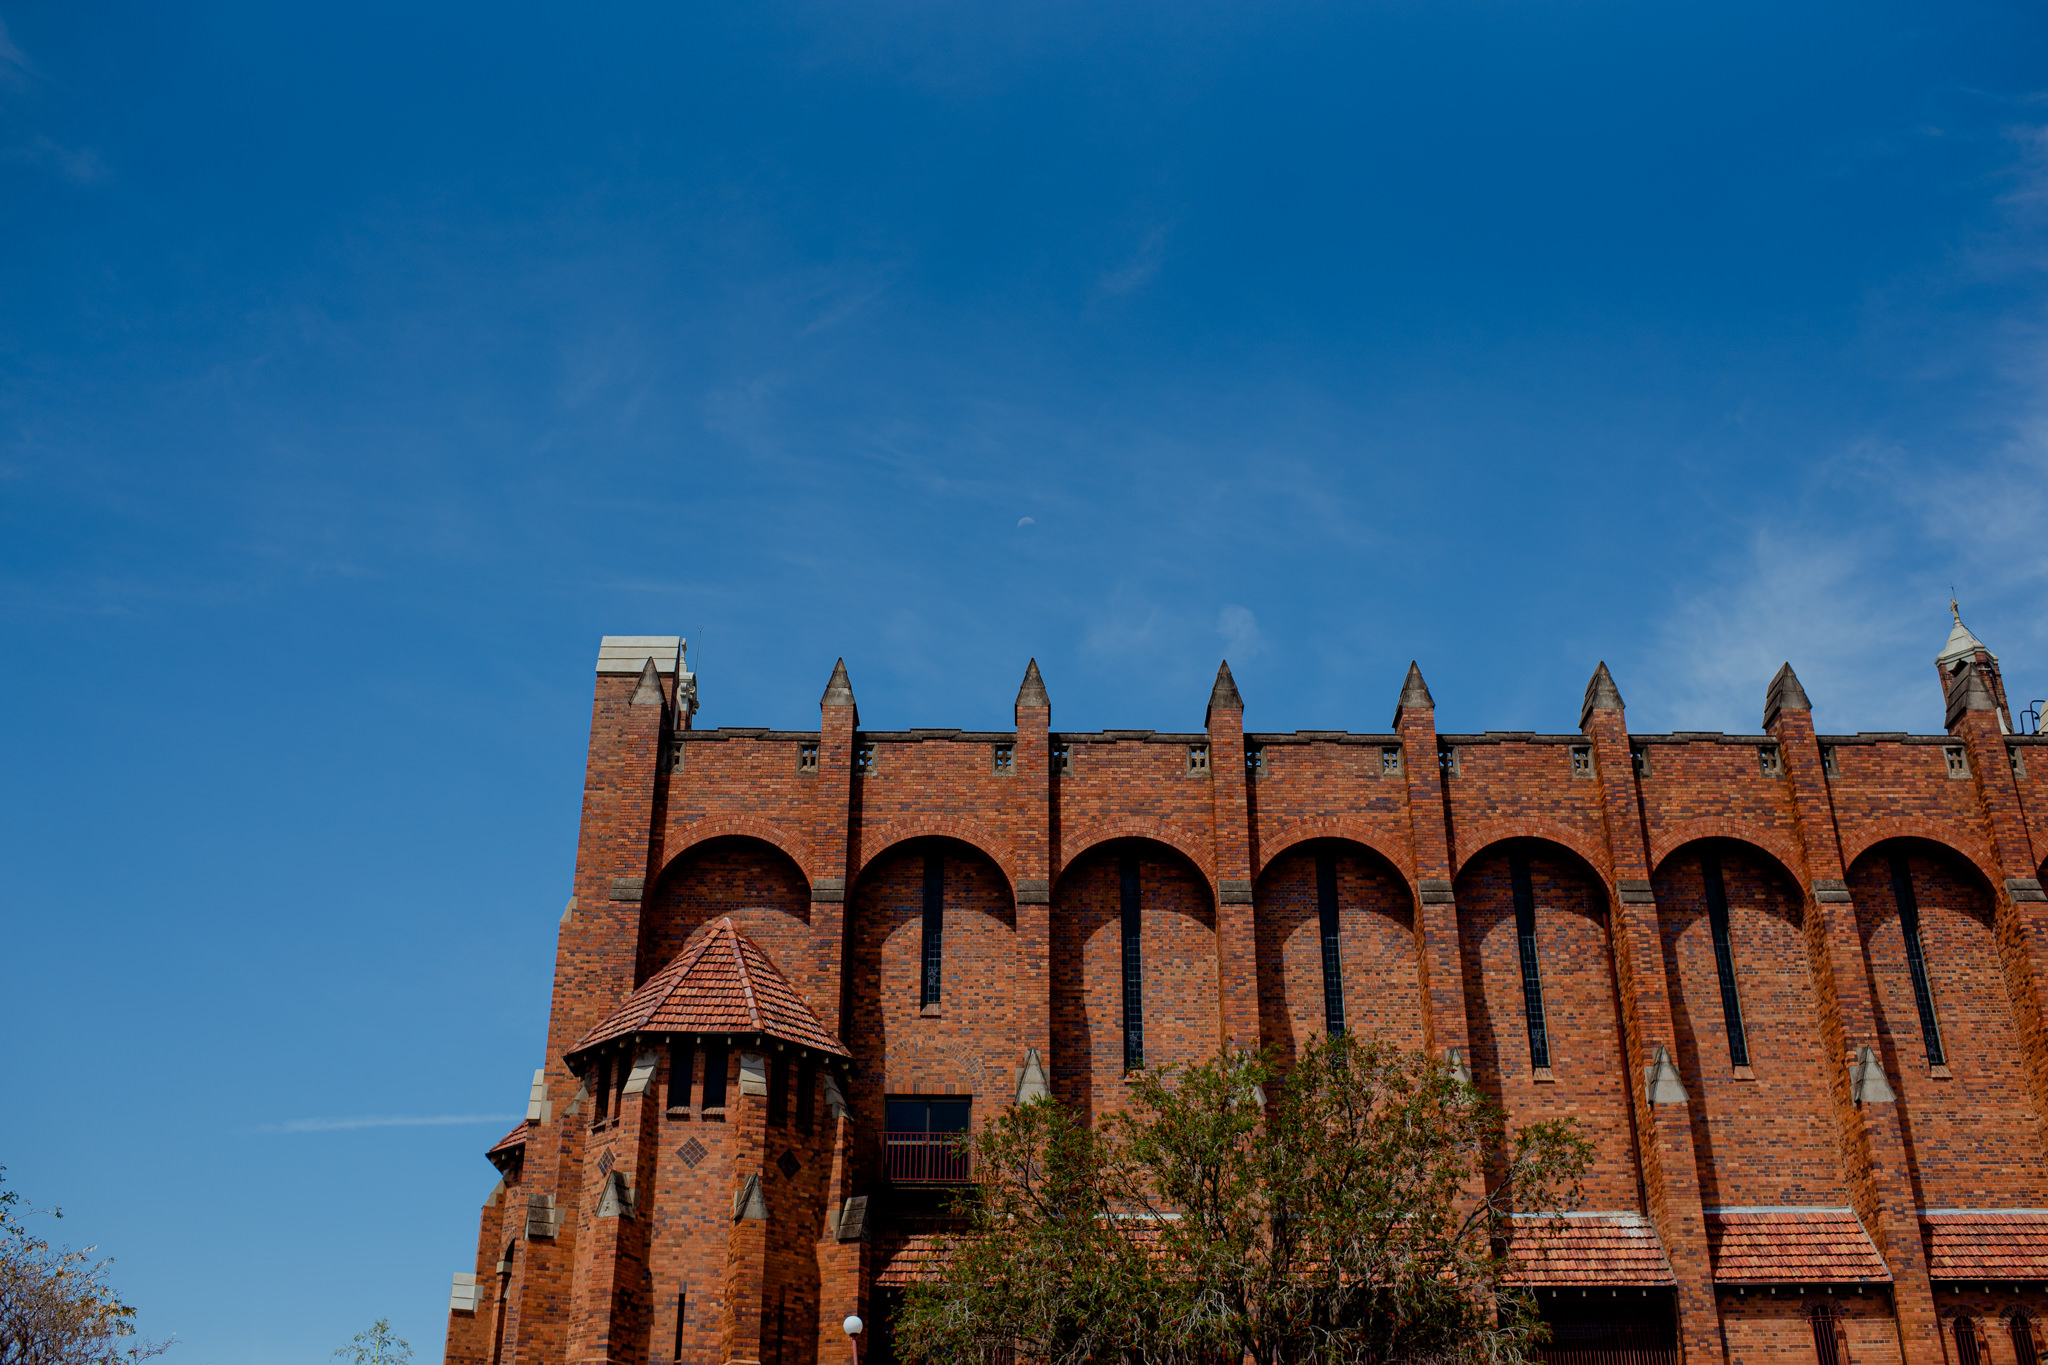 The roof of a red brick cathedral in Brisbane